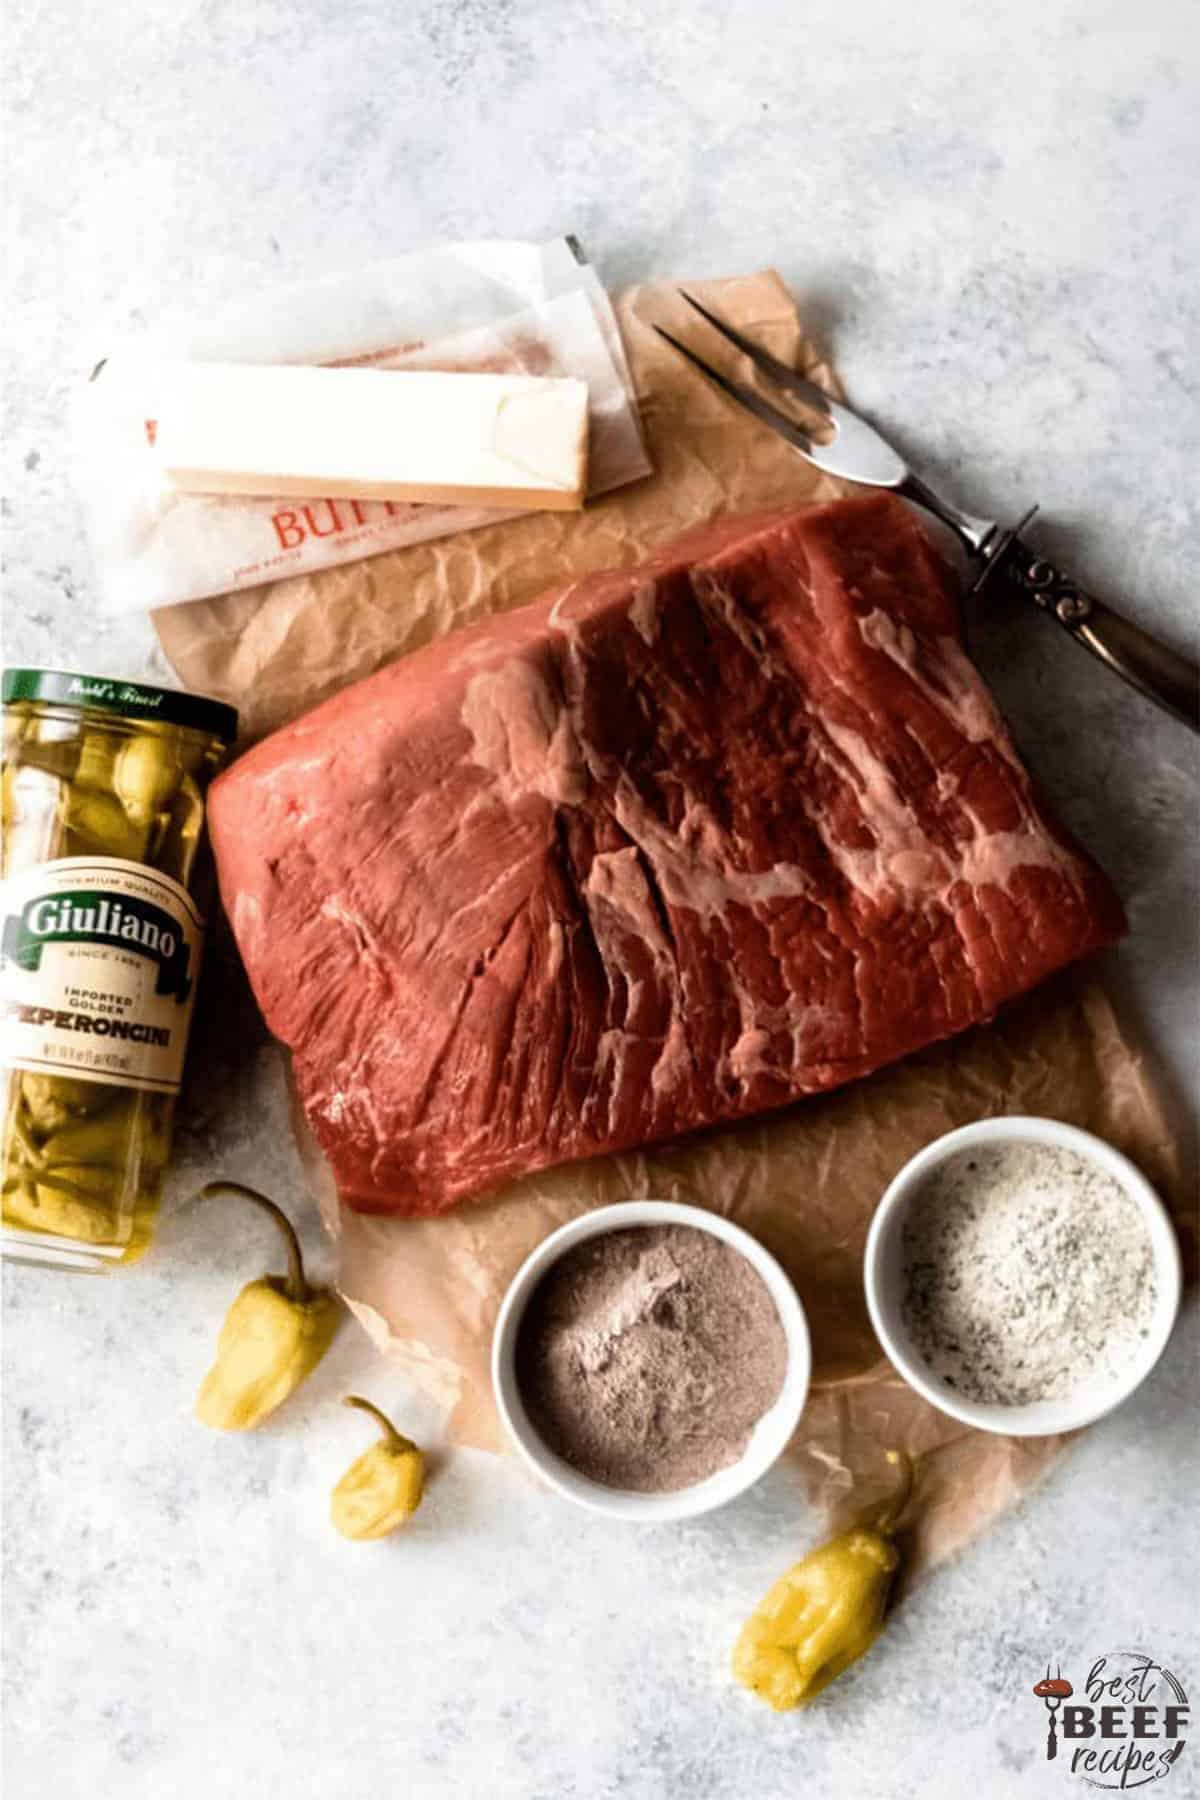 Ingredients to make slow cooker mississippi roast on a white surface